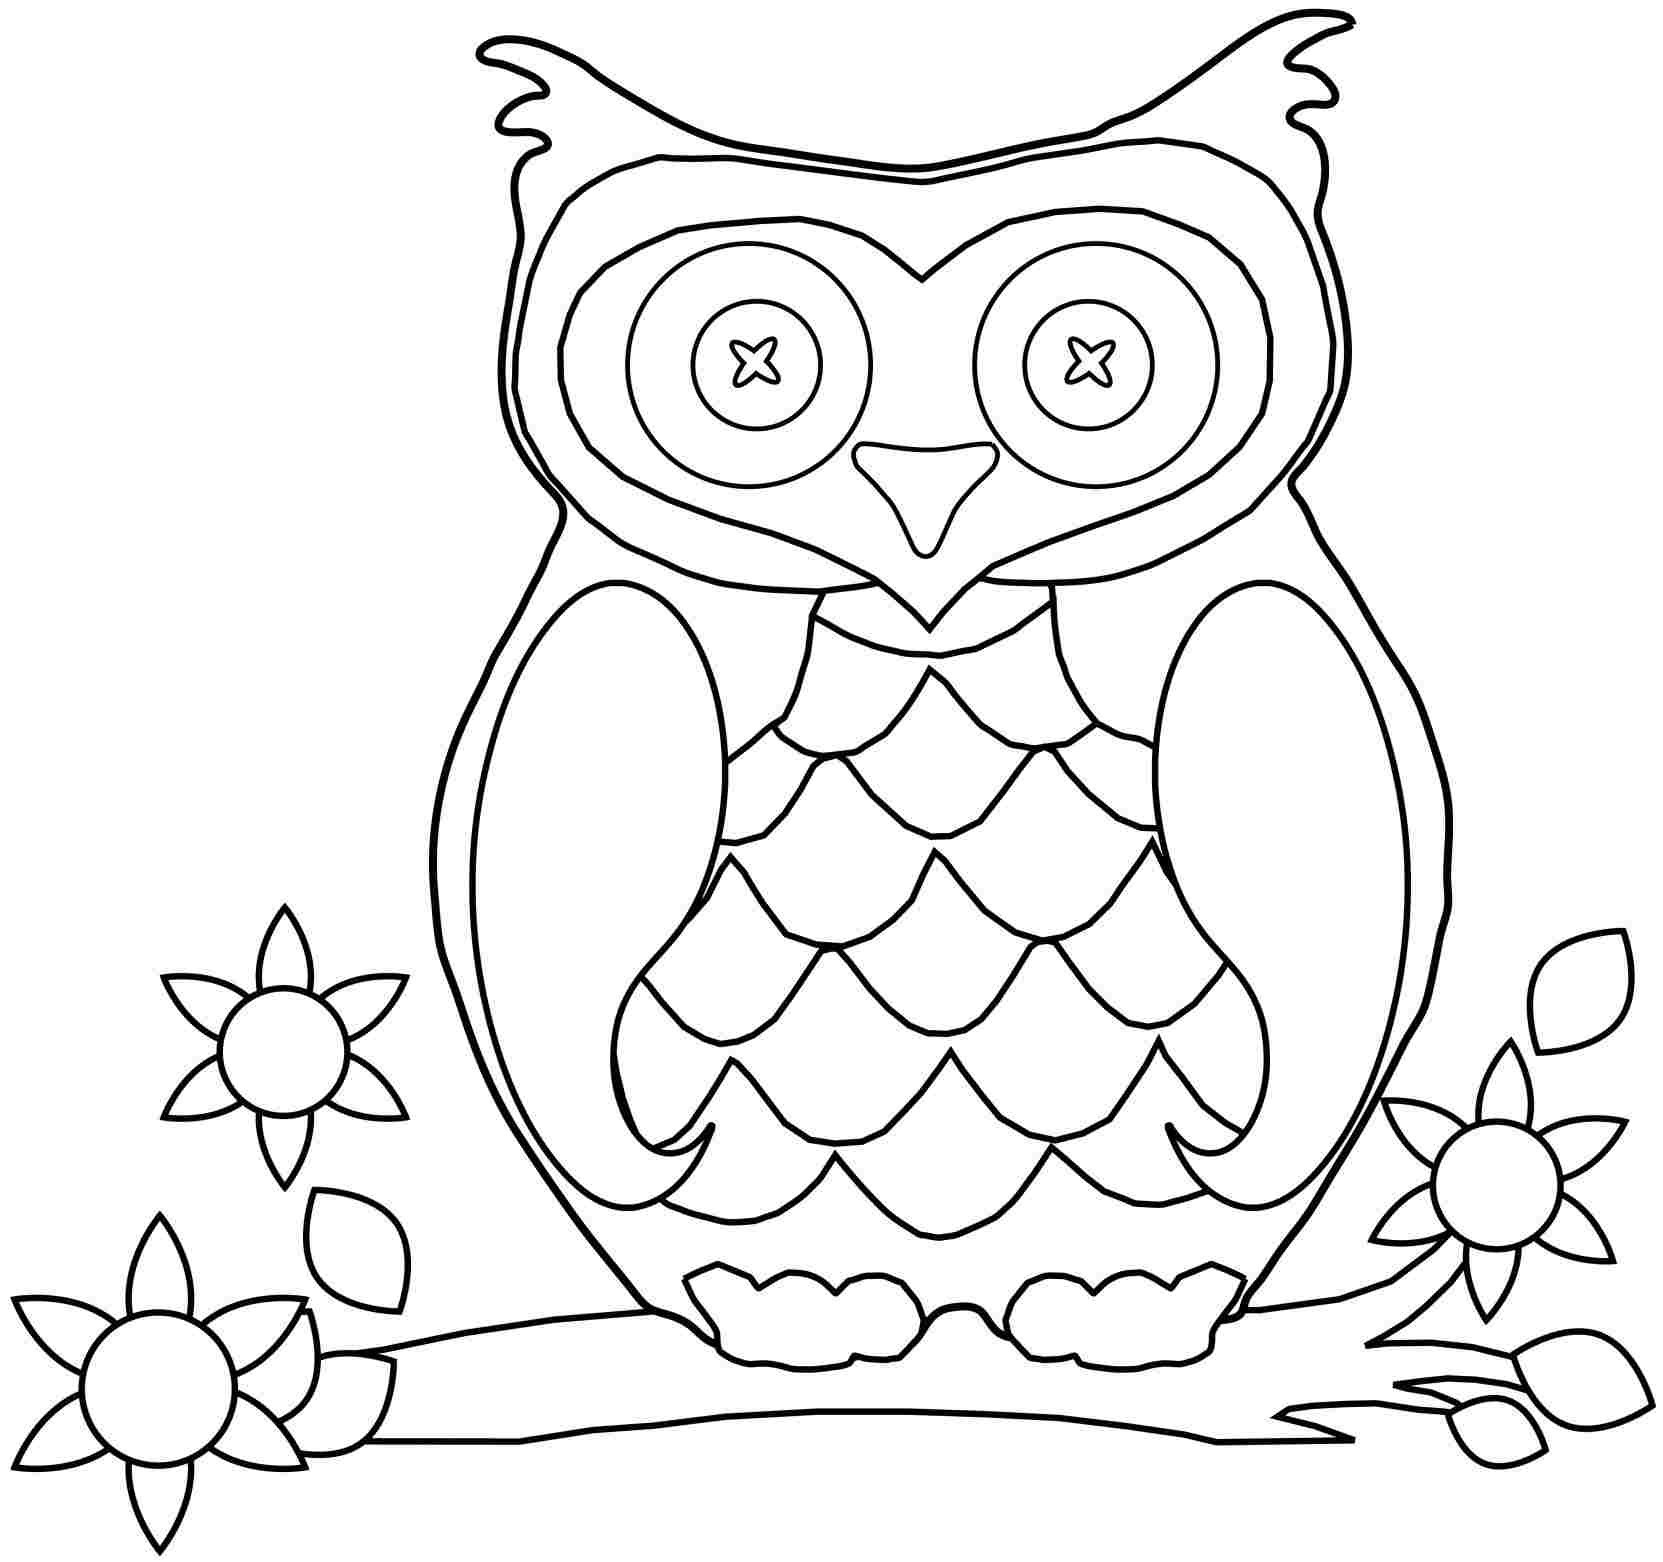 1663x1562 coloring pages elegant owl coloring pages baby owl coloring